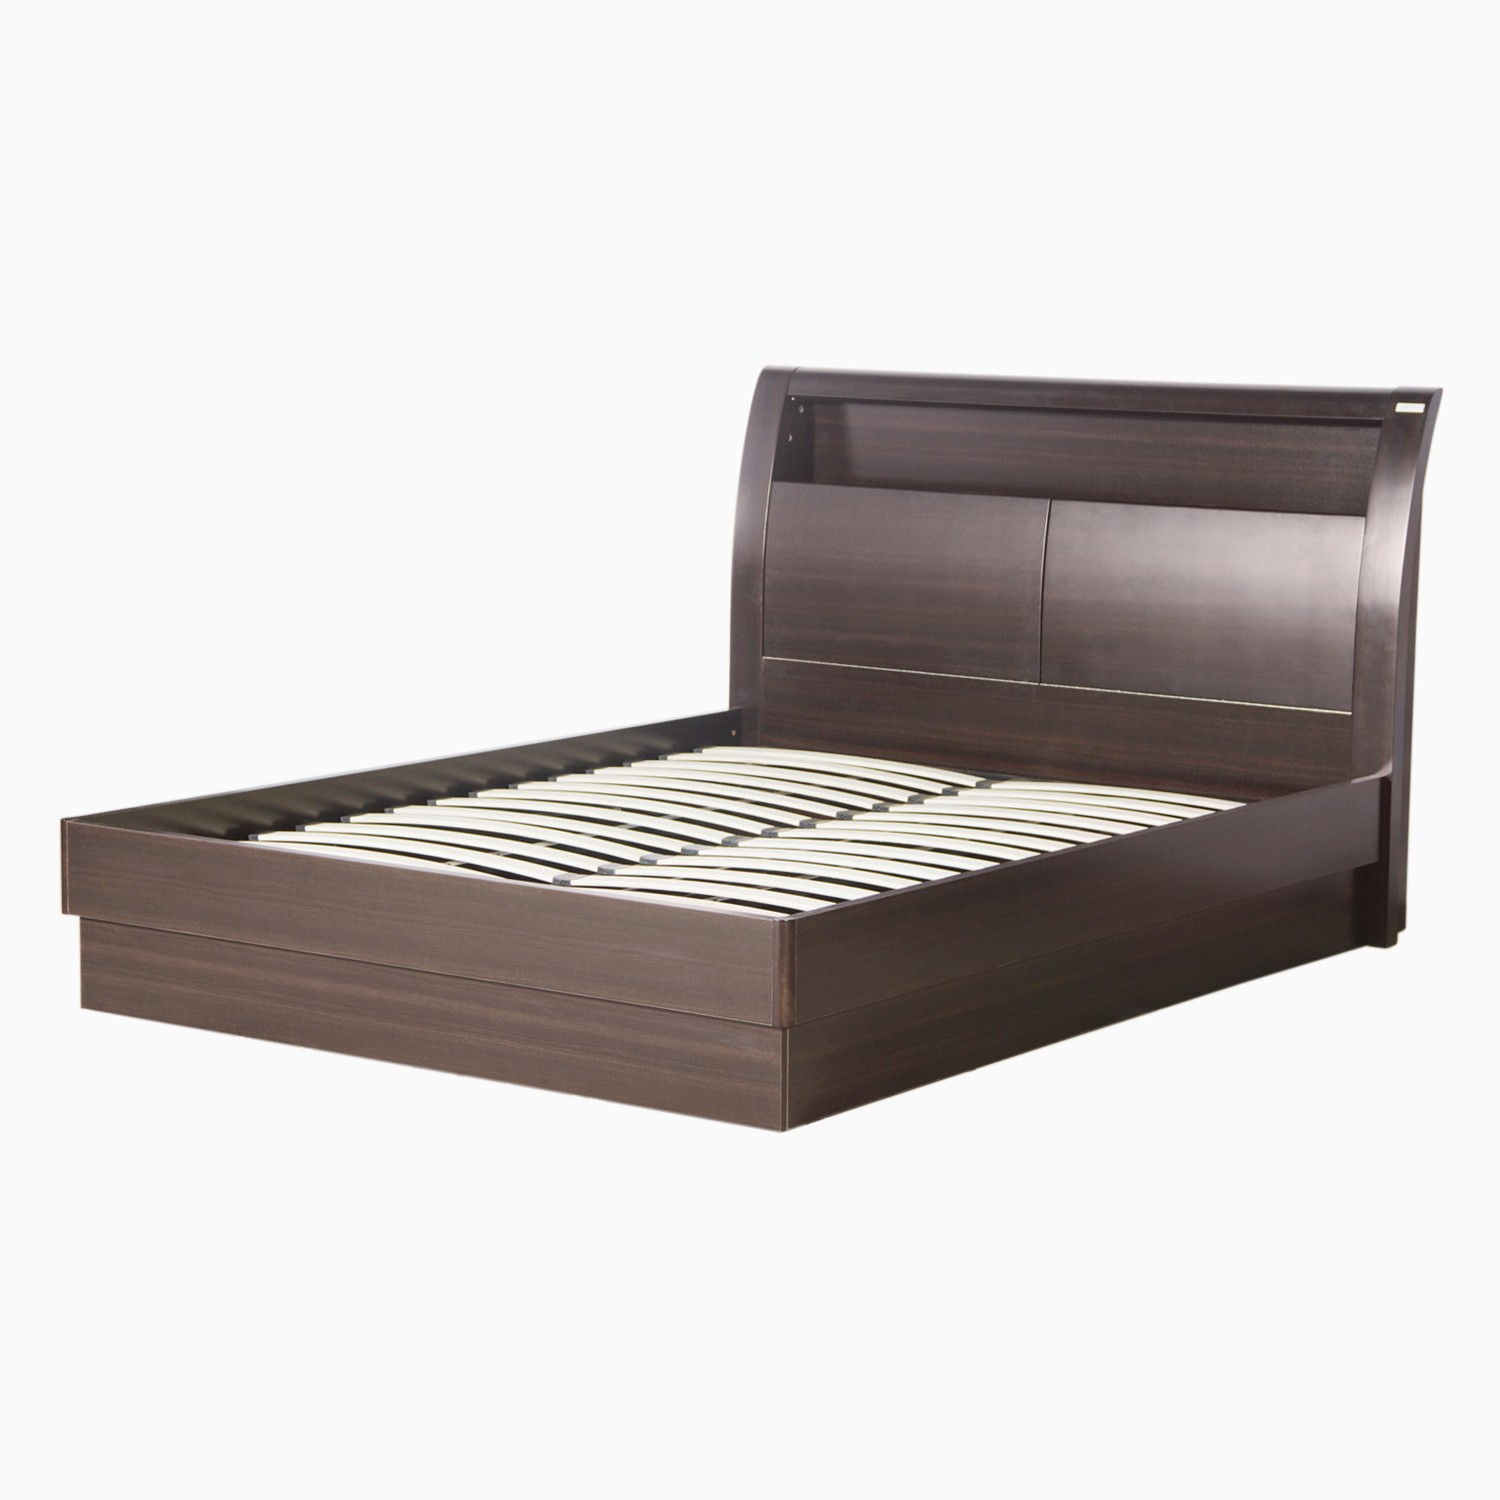 Bed bedsides price list in india 16 07 2017 buy bed bedsides online Godrej interio home furniture price list